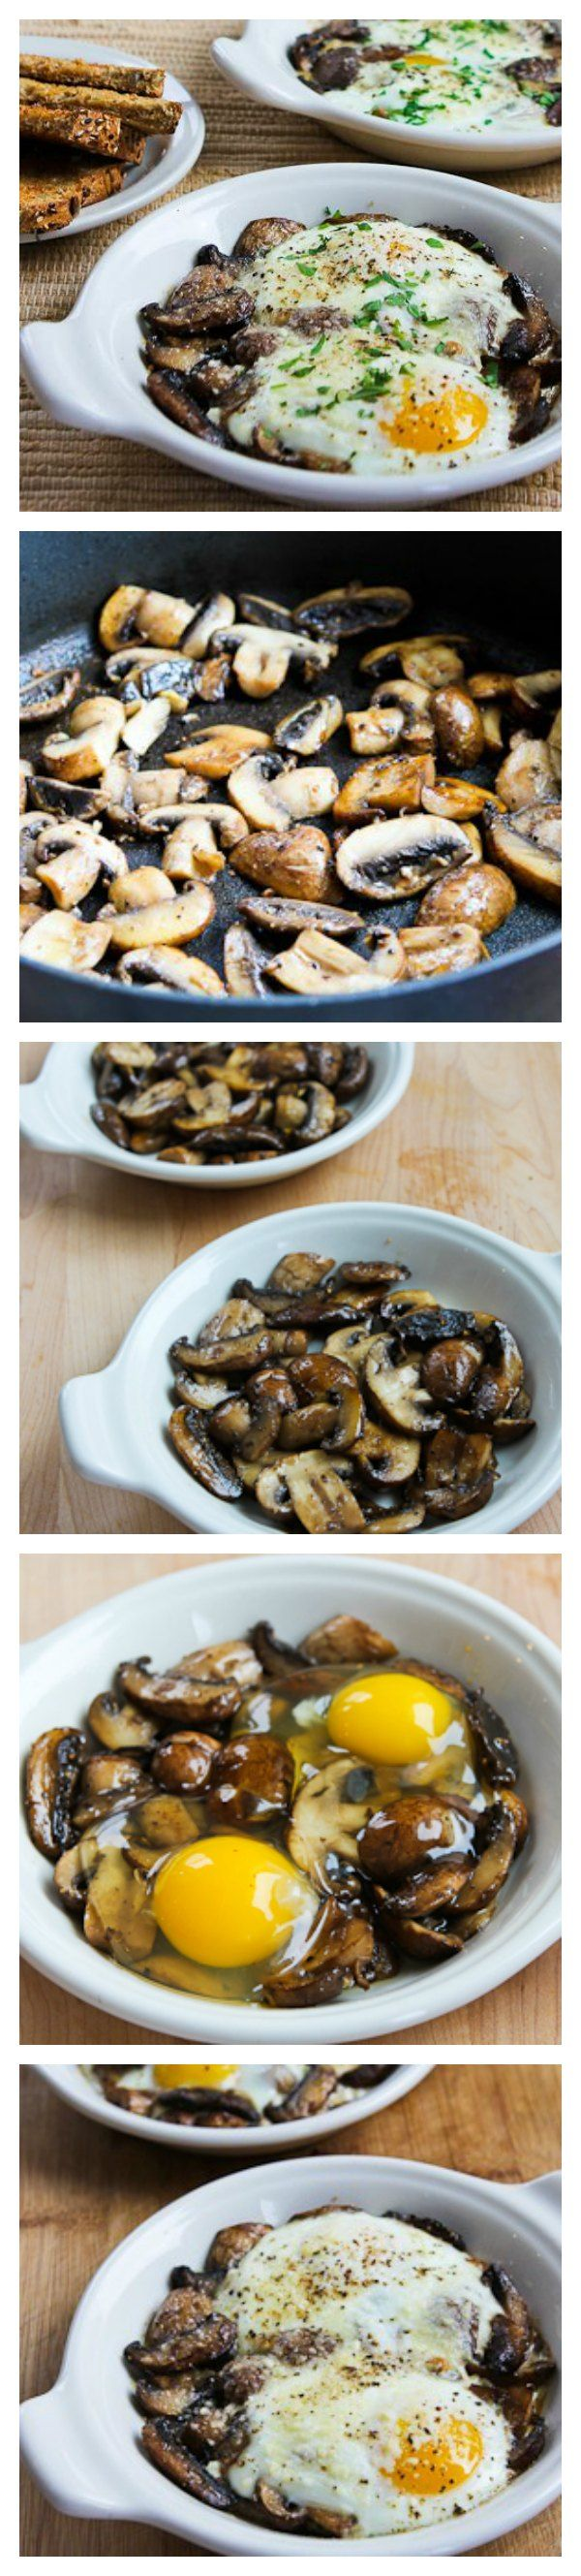 Baked Eggs with Mushrooms and Parmesan are an easy-but-impressive breakfast for holiday guests. The recipe has a great tip for getting the egg white cooked without over-cooking the yolk. Eat with toast or skip the toast for a Low-Carb and Gluten-Free breakfast. [found on KalynsKitchen.com]